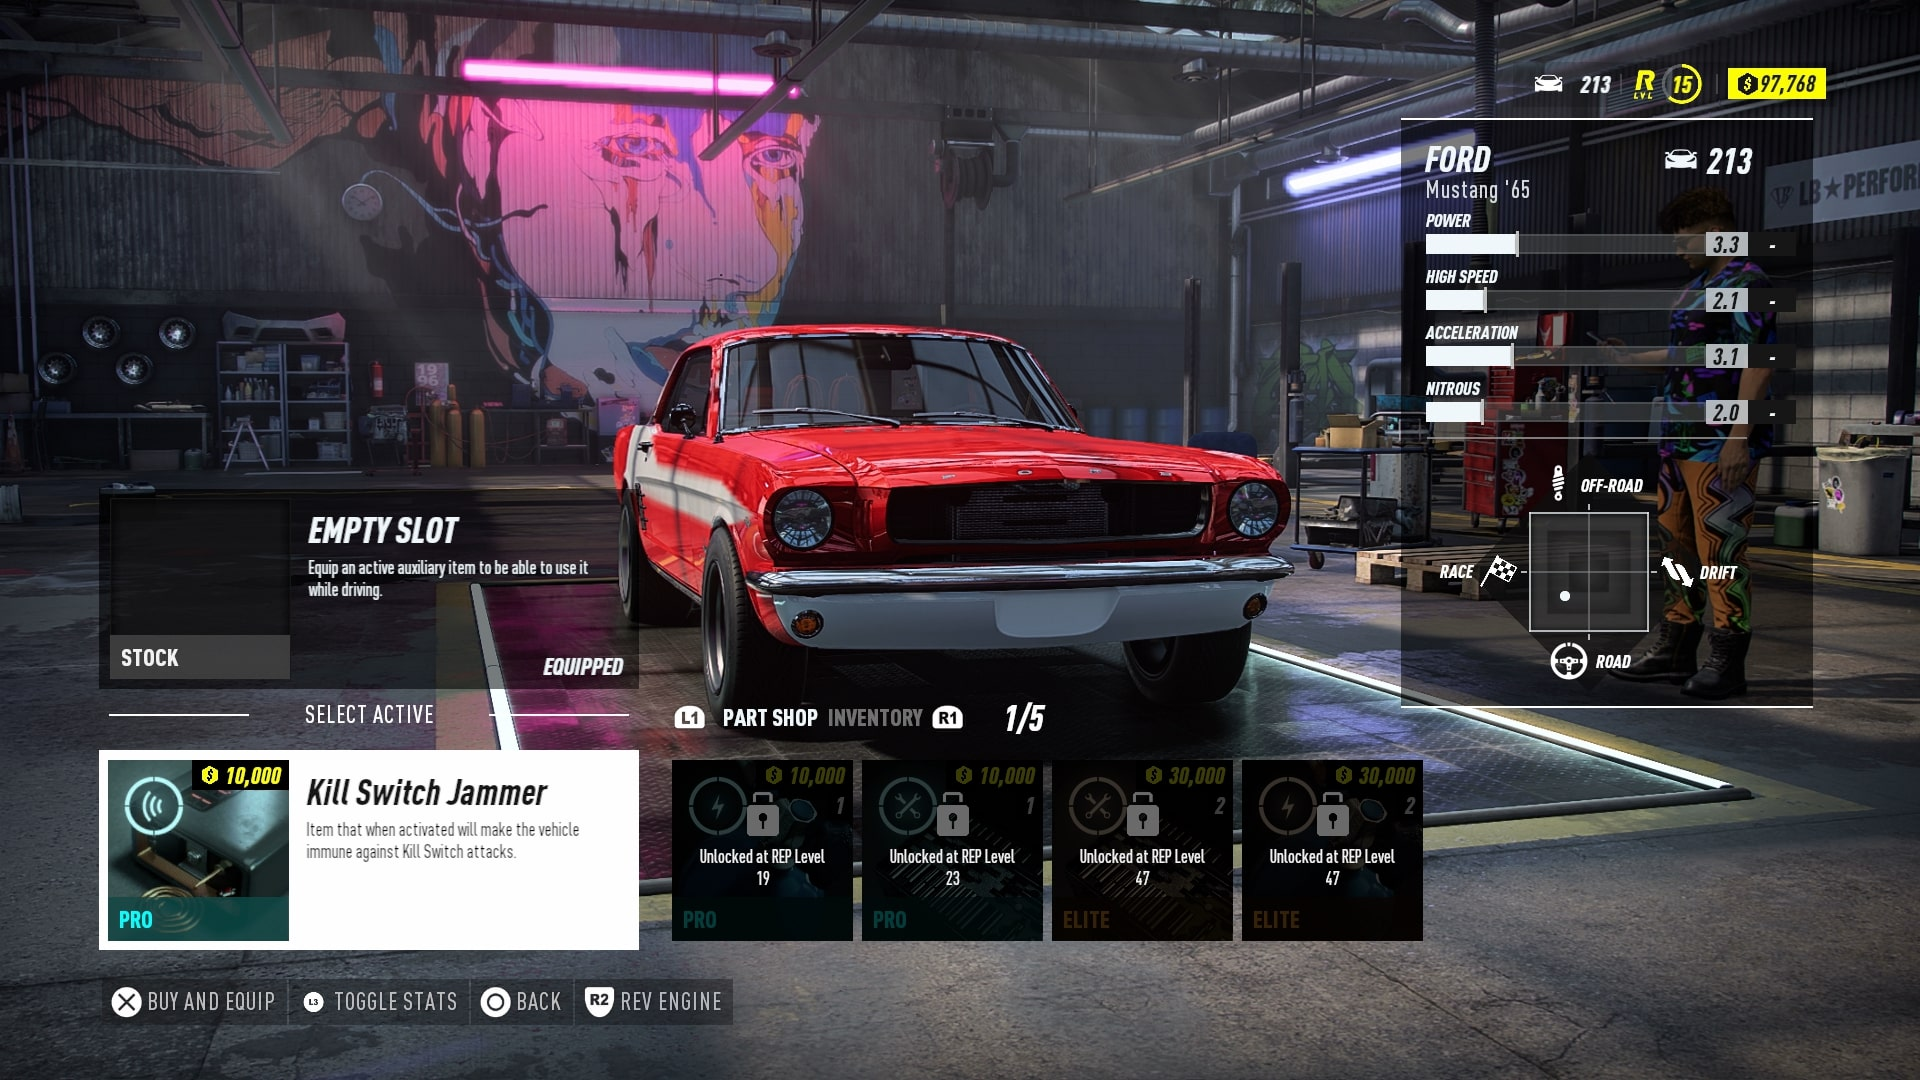 Police Radar Jammer >> How to Escape the Police in Need For Speed Heat | USgamer